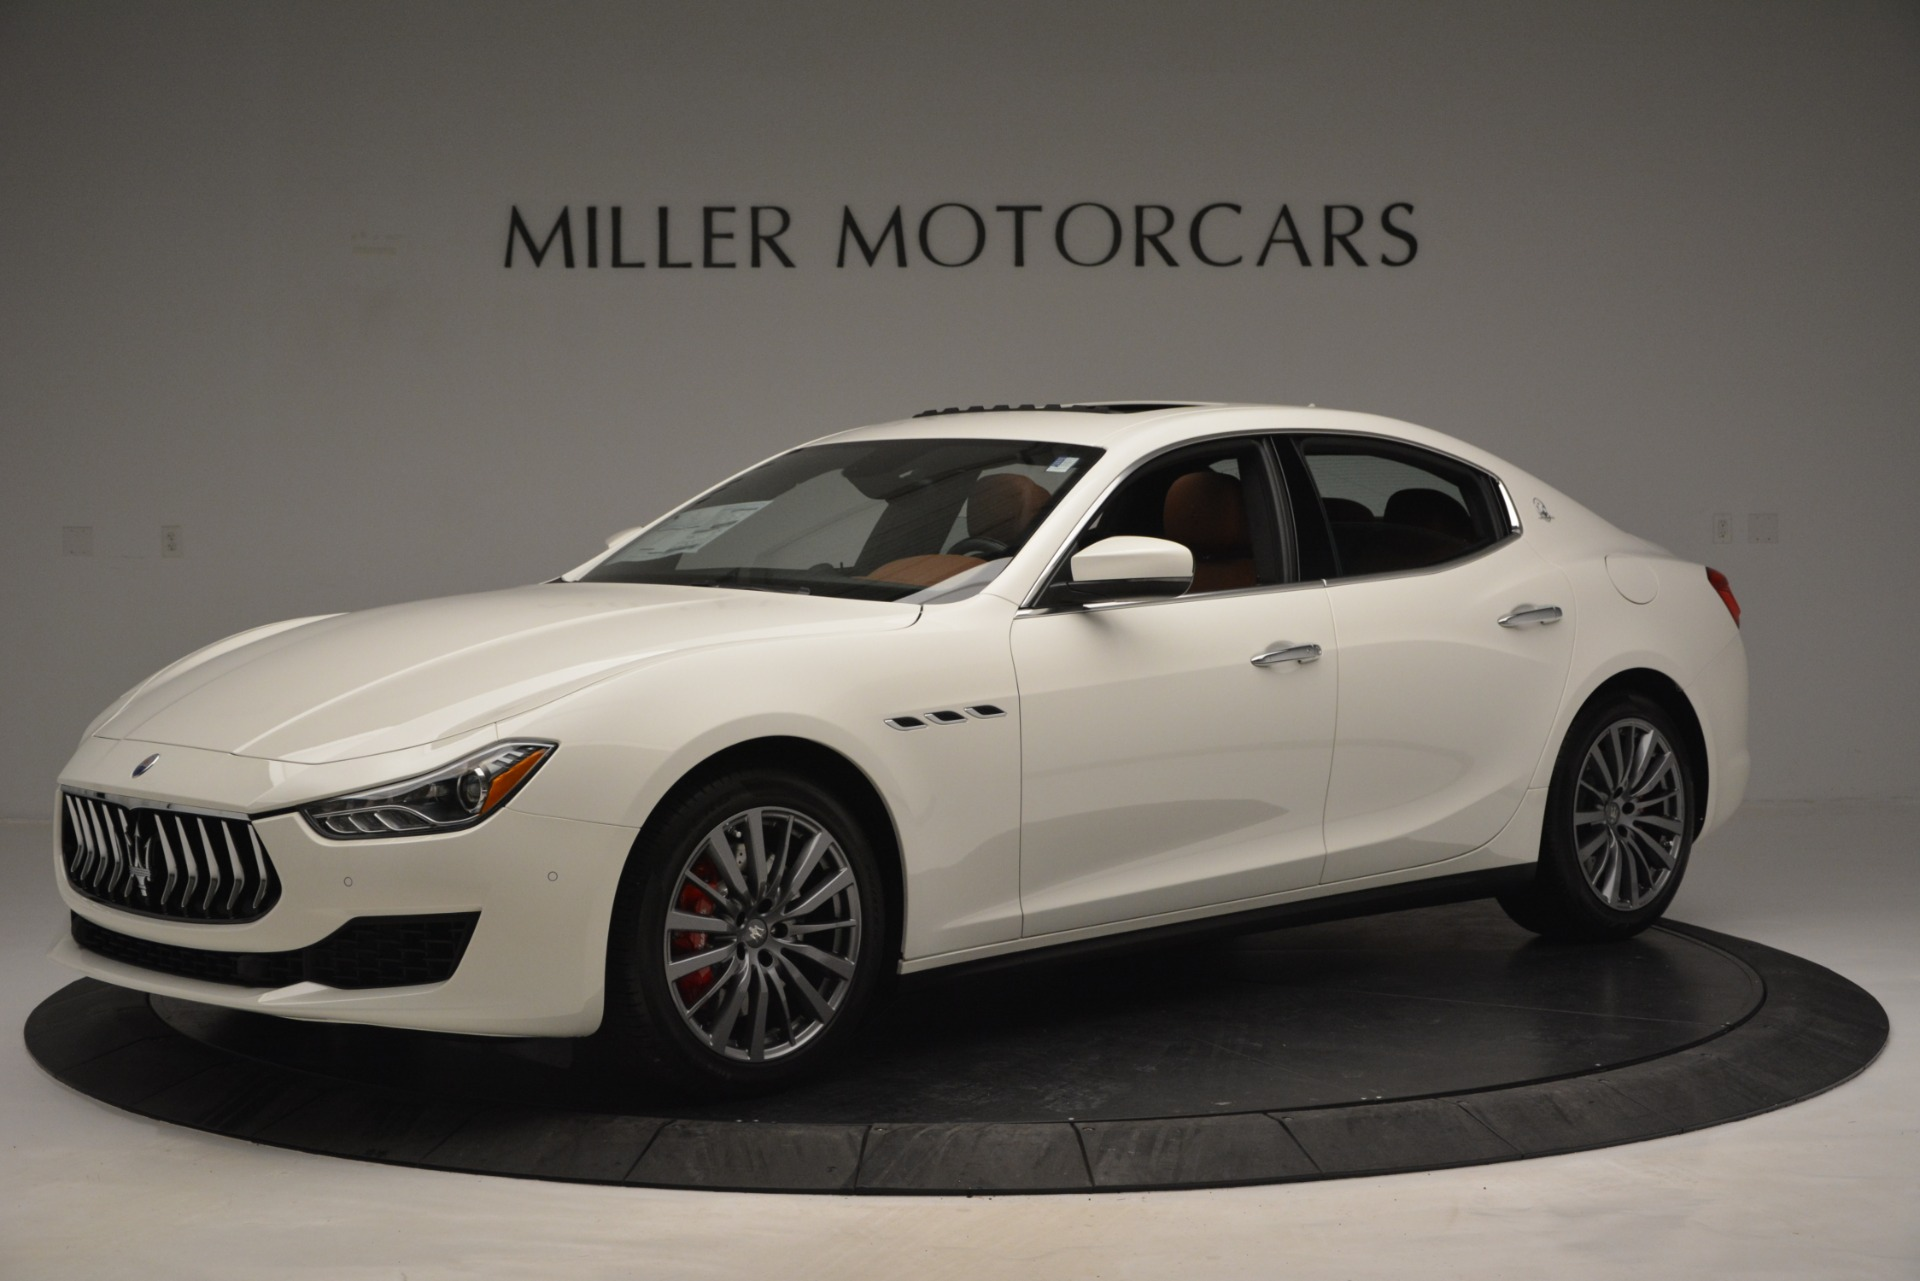 New 2019 Maserati Ghibli S Q4 For Sale In Greenwich, CT. Alfa Romeo of Greenwich, M2245 2795_p2